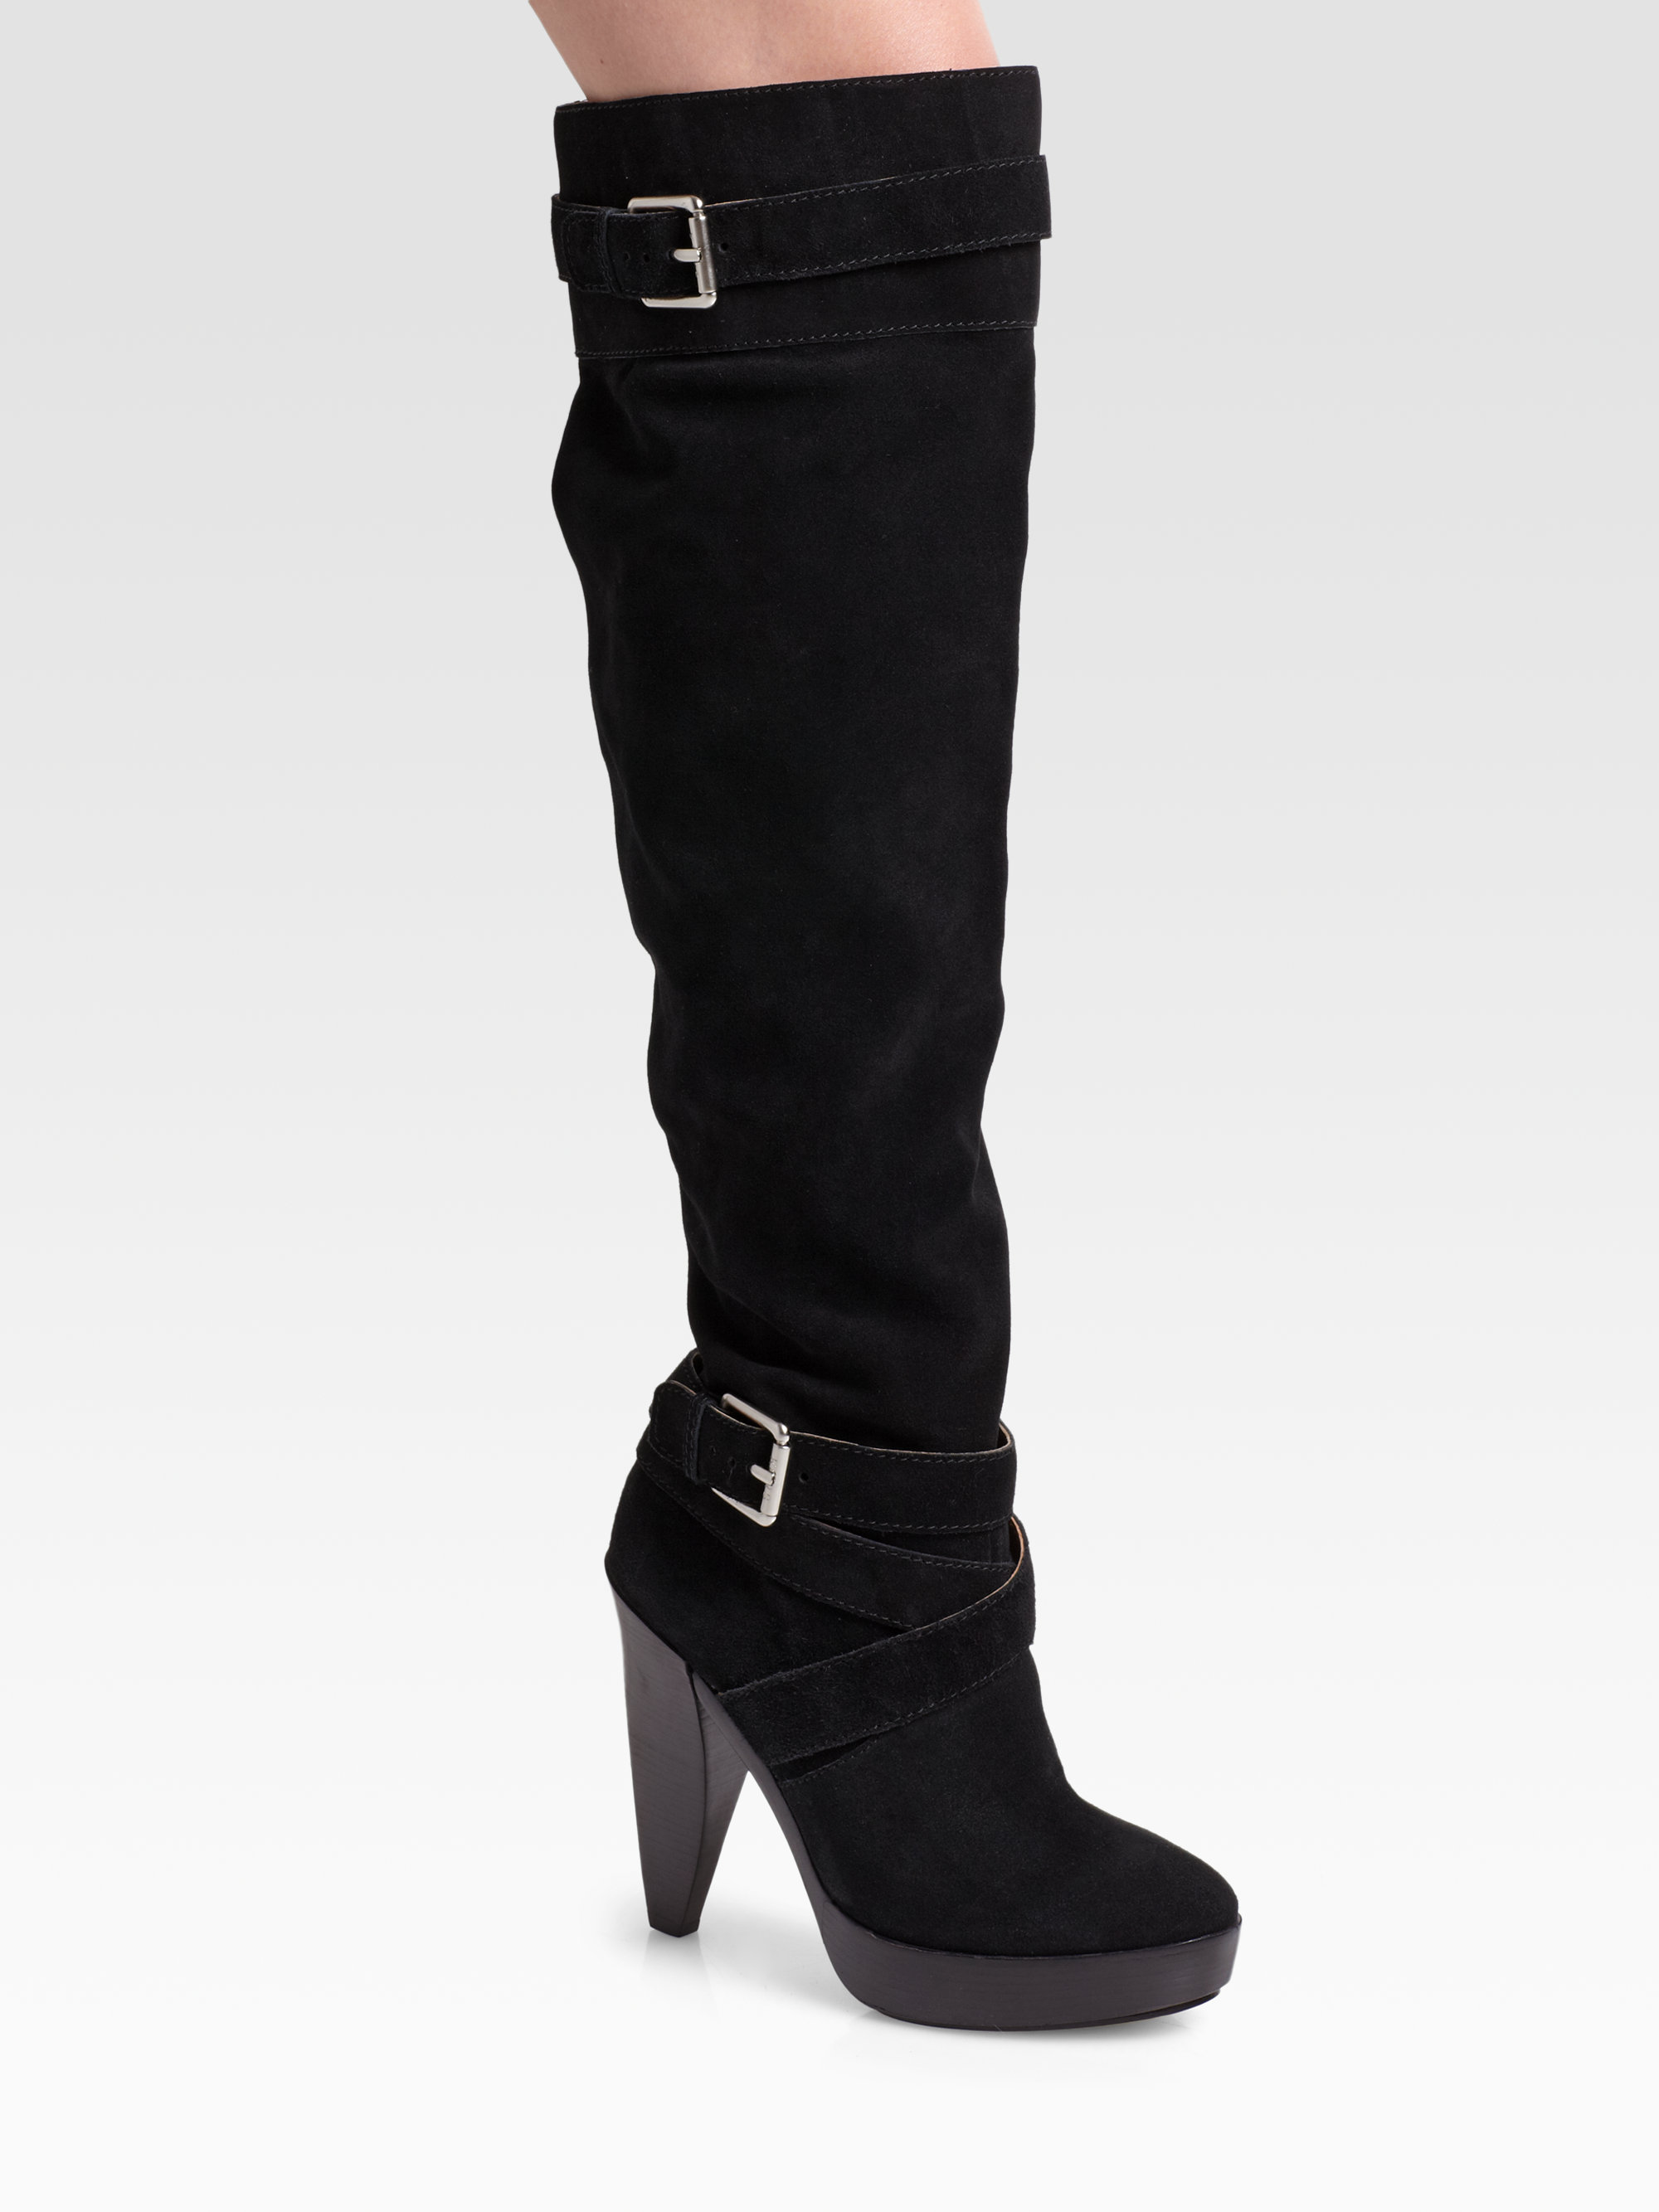 kors by michael kors zanzia suede buckle boots in black lyst